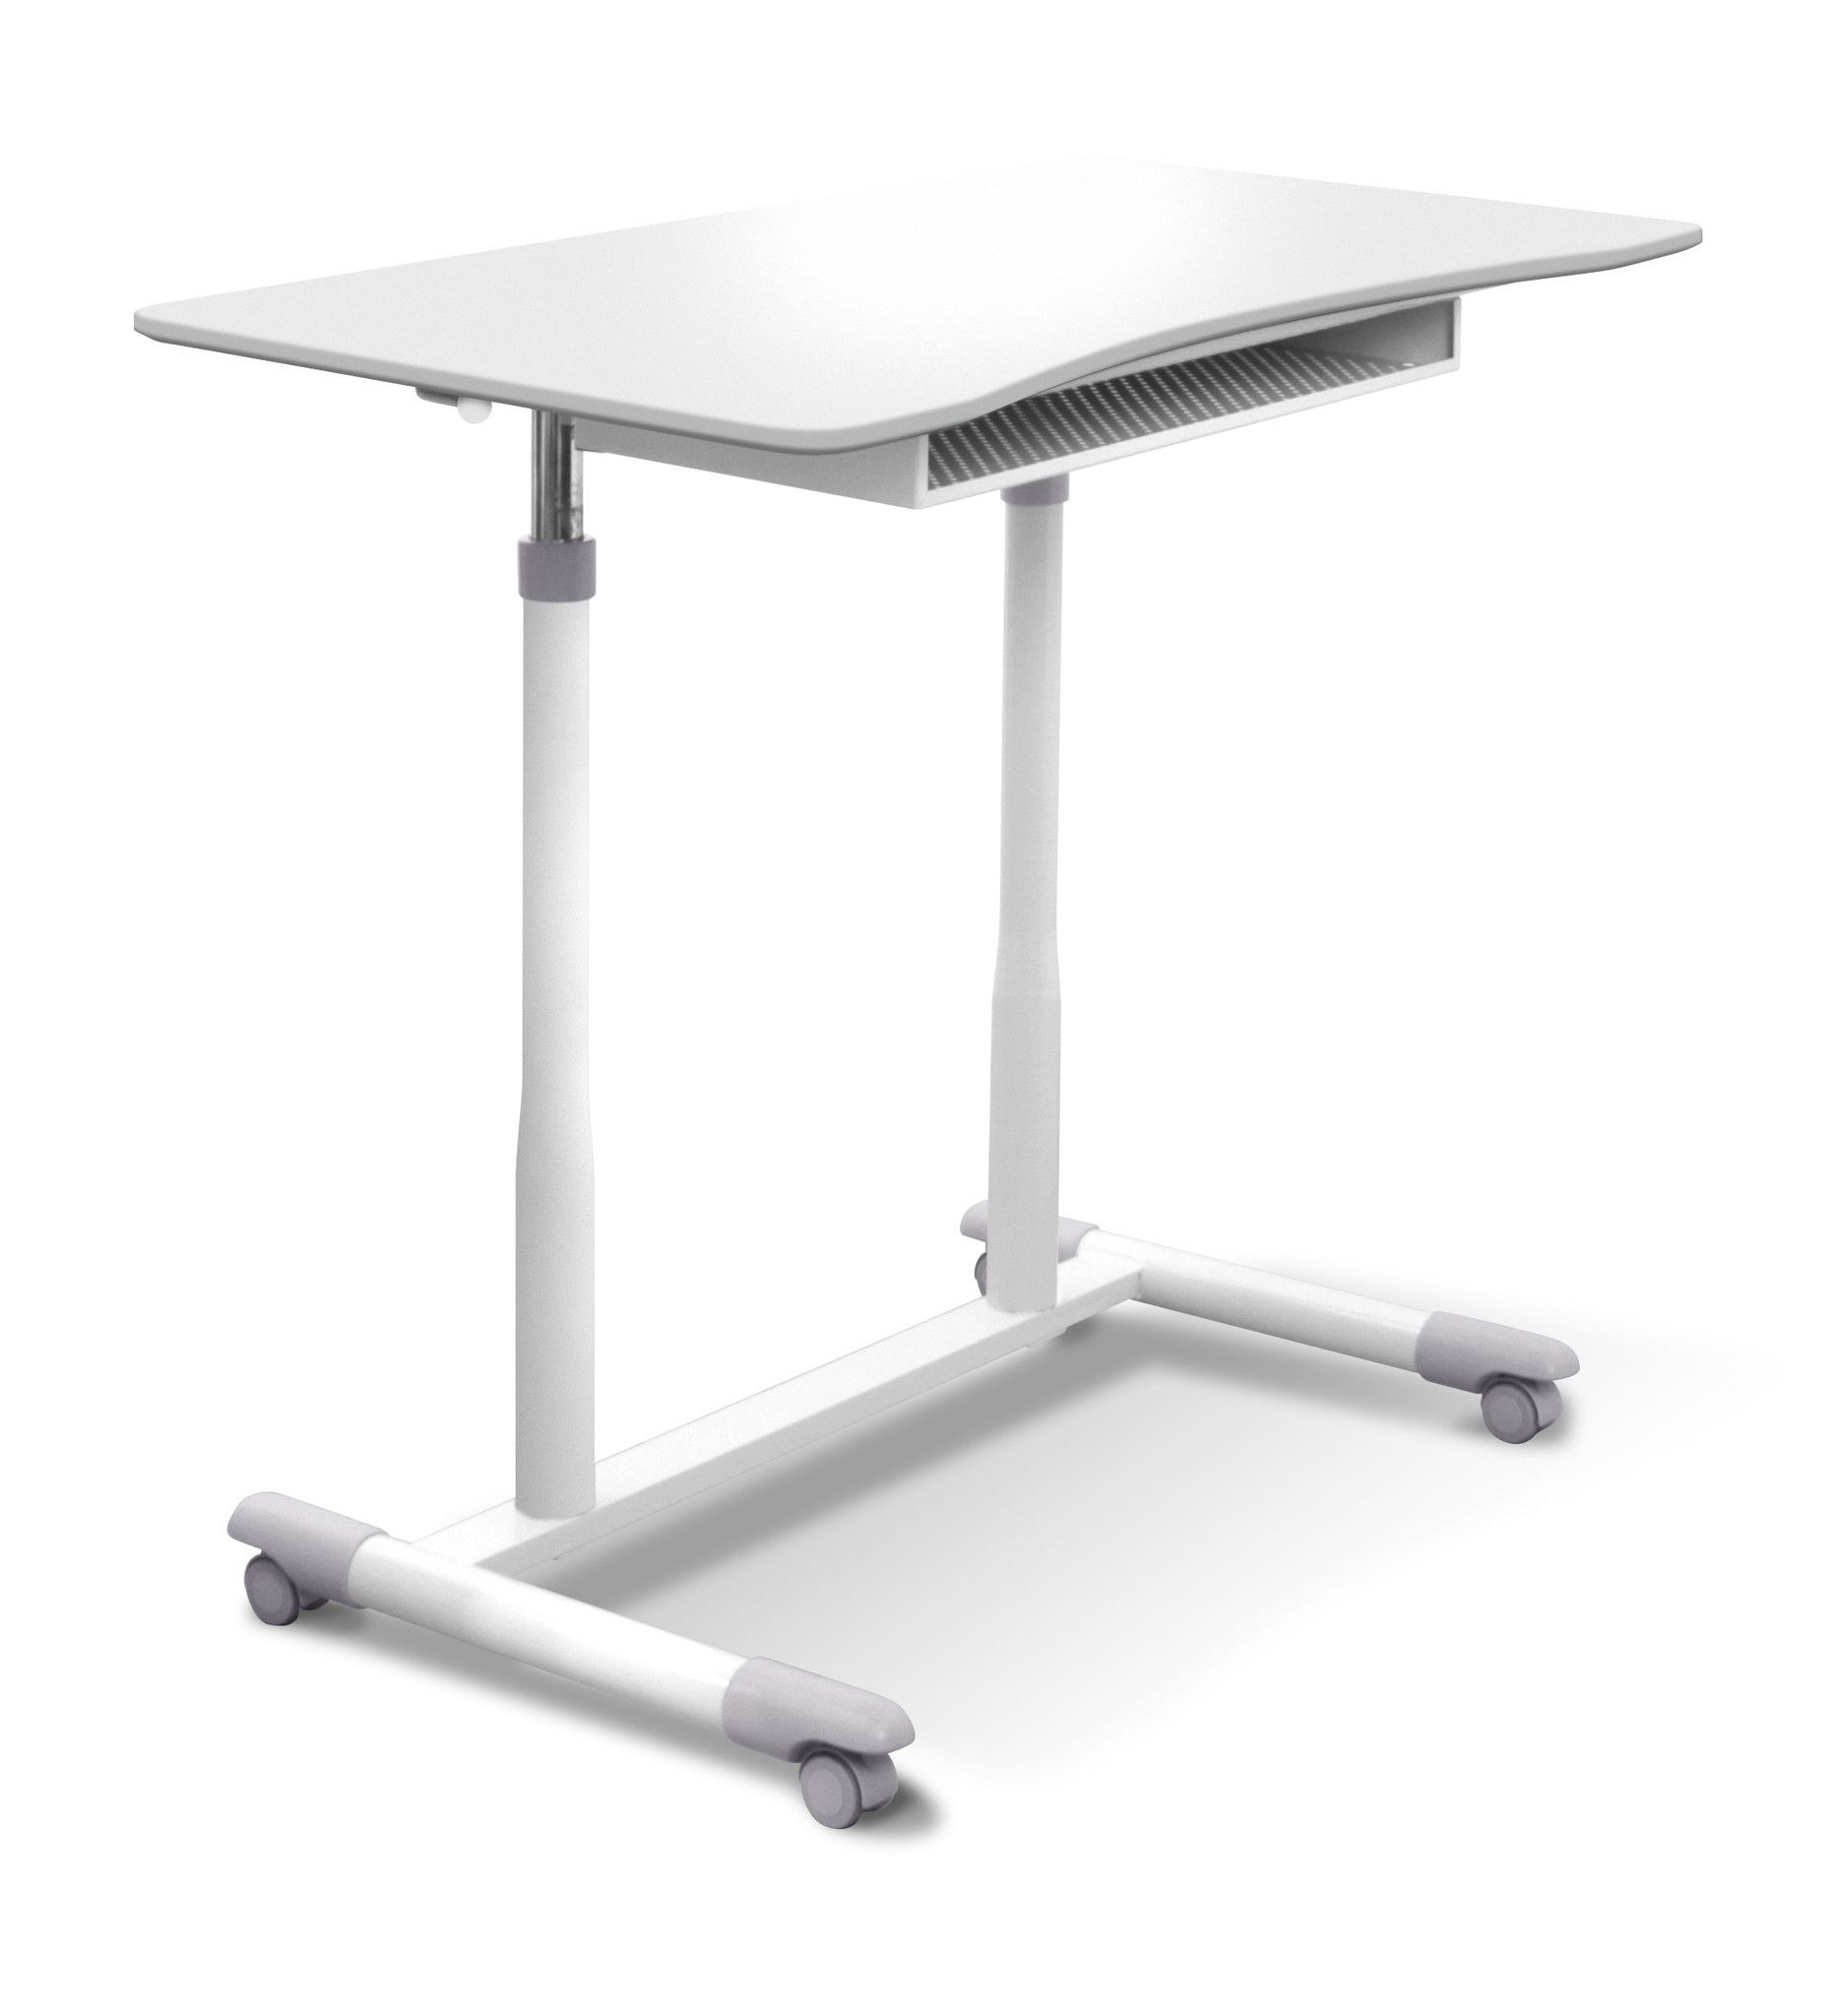 height adjustable u0026 mobile stand up desk jesper office 205 more - Jesper Office